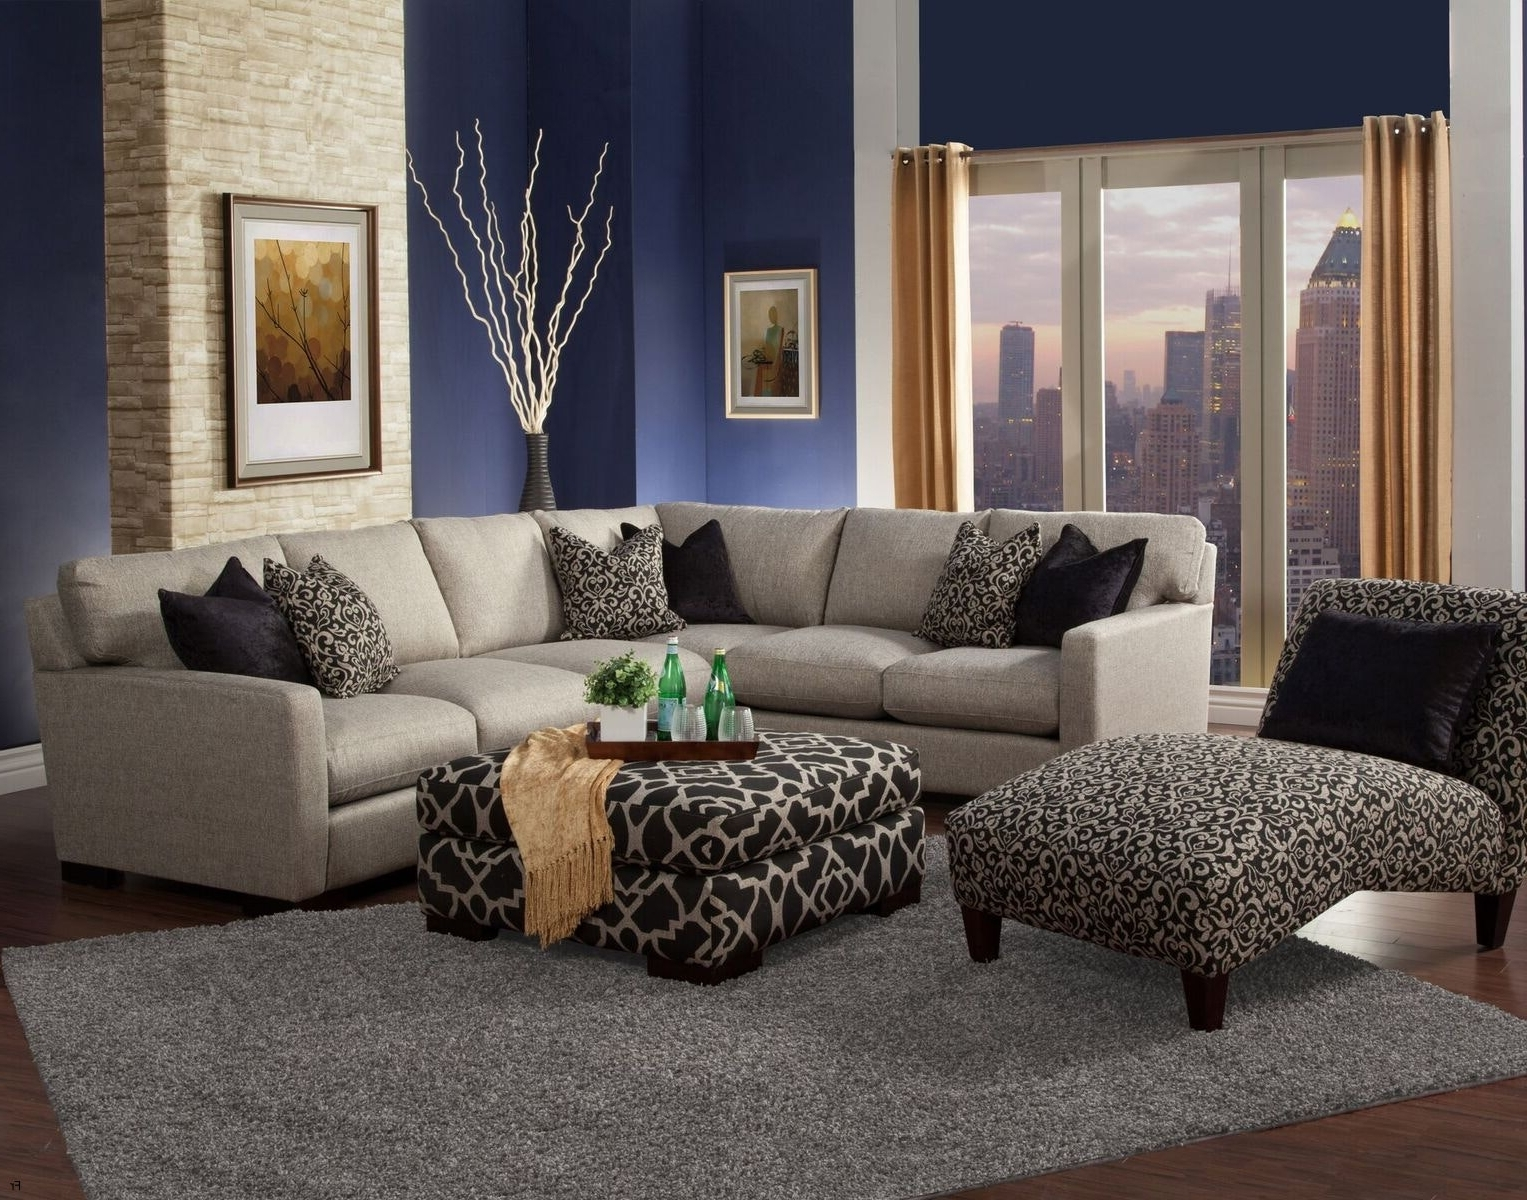 Best And Newest Excellent Reclining Sectional Sofas Microfiber 62 For Your Goose With Regard To Goose Down Sectional Sofas (View 14 of 15)